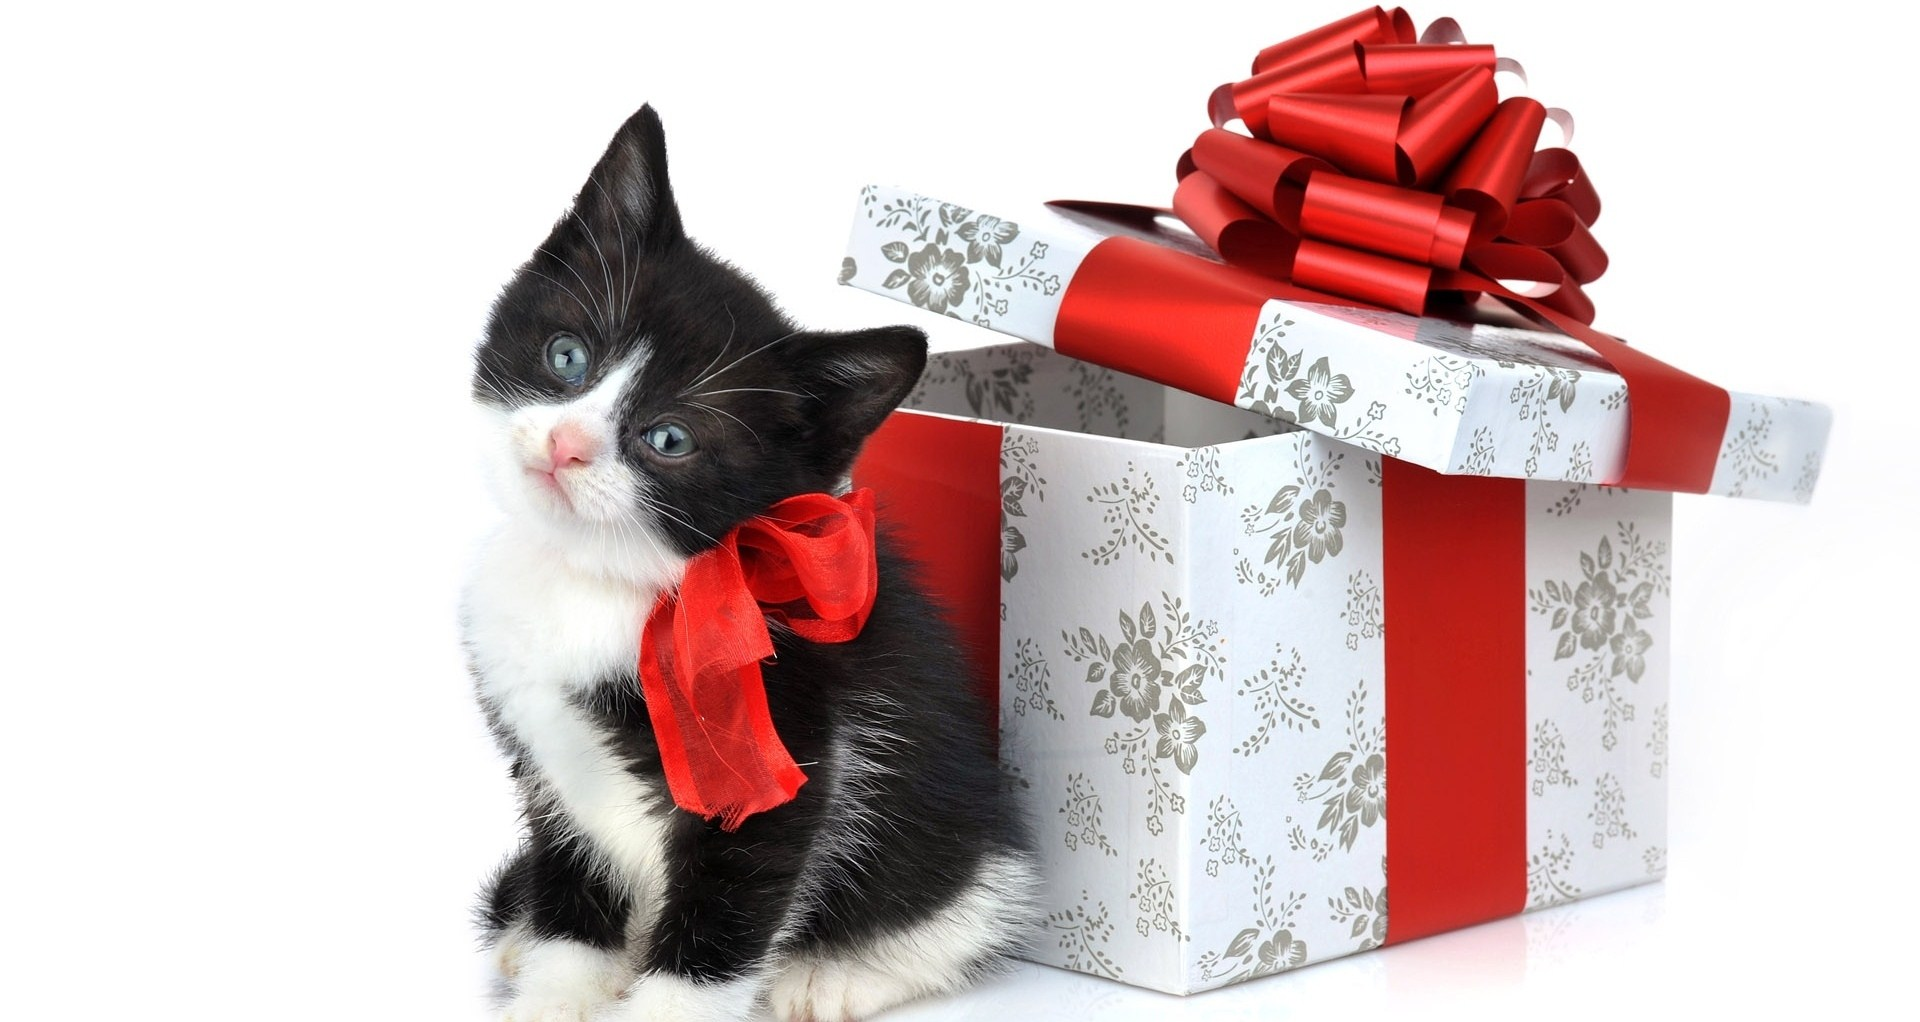 christmas cat gift pictures Christmas cat wallpaper 2015 Christmas 1920x1022